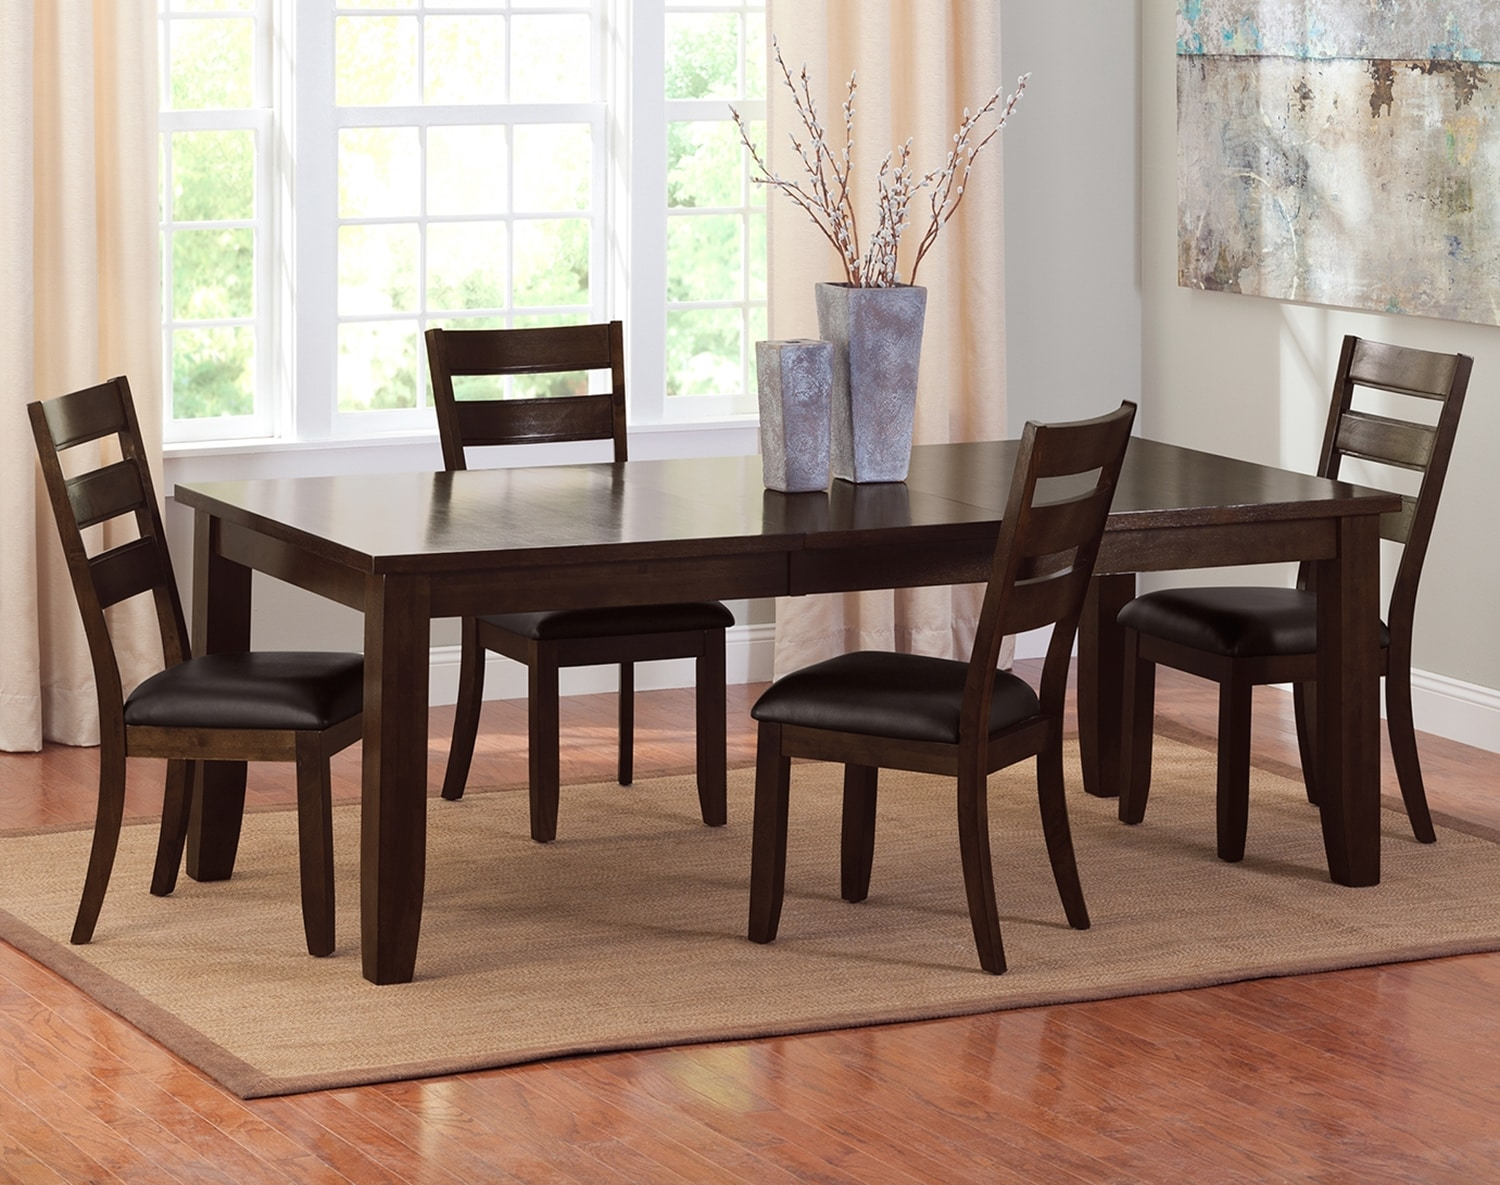 The Abaco Collection Brown Value City Furniture